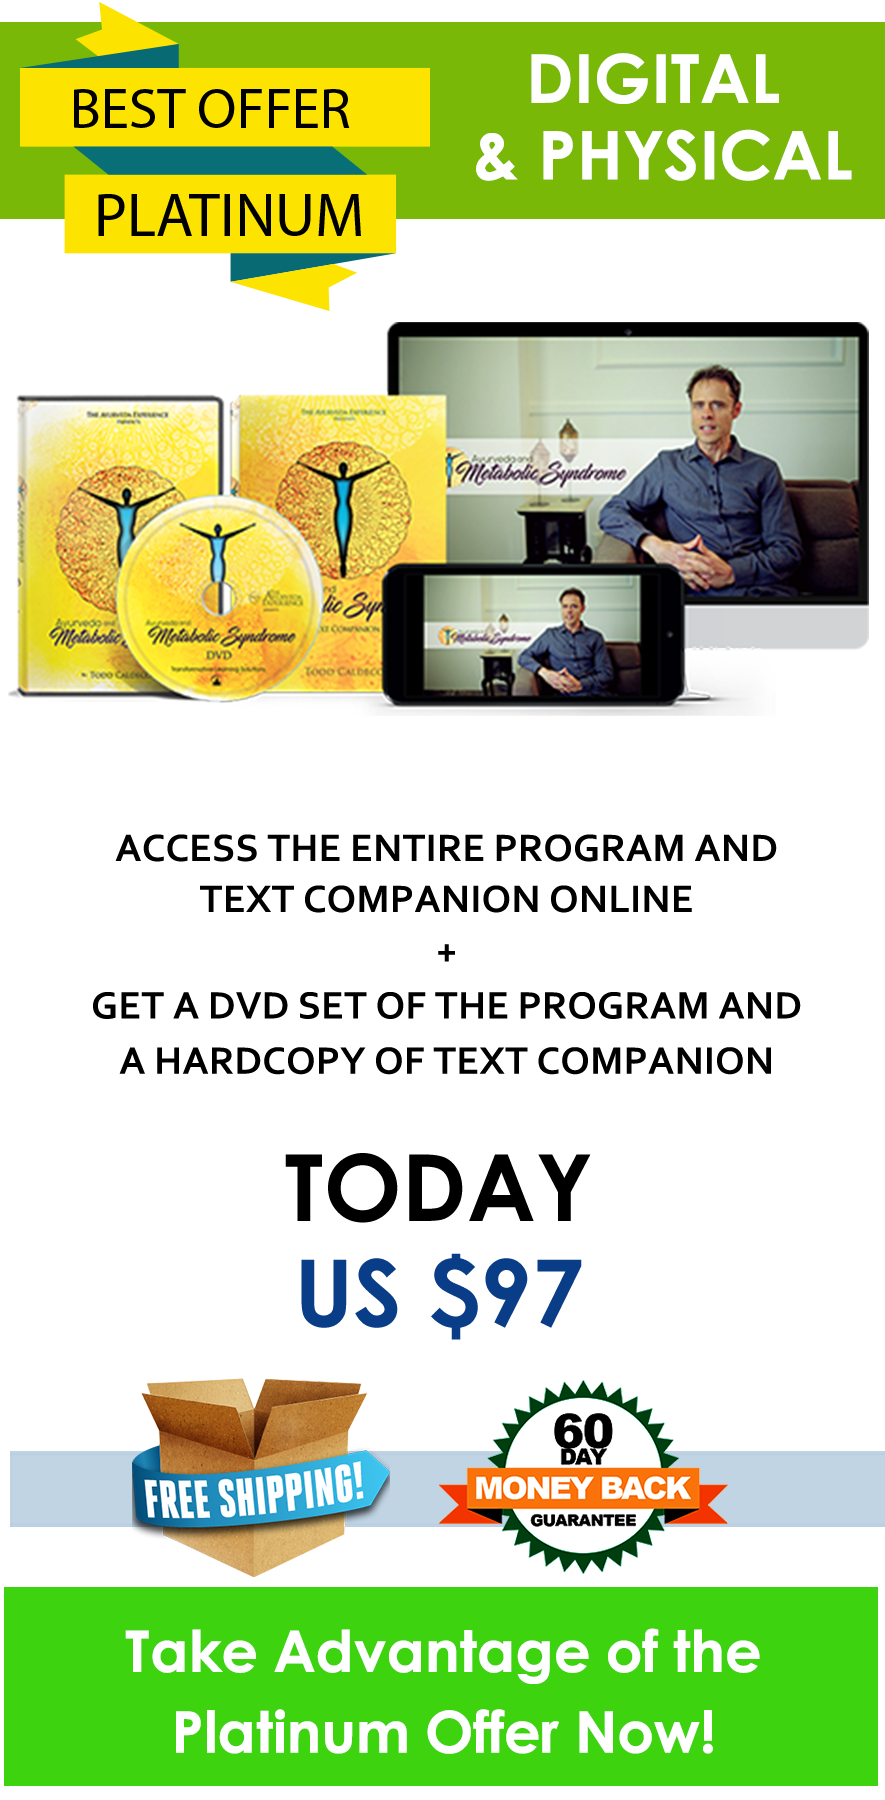 Get the Platinum version now: instant access to the online course AND get the DVD delivered to your doorstep for free!